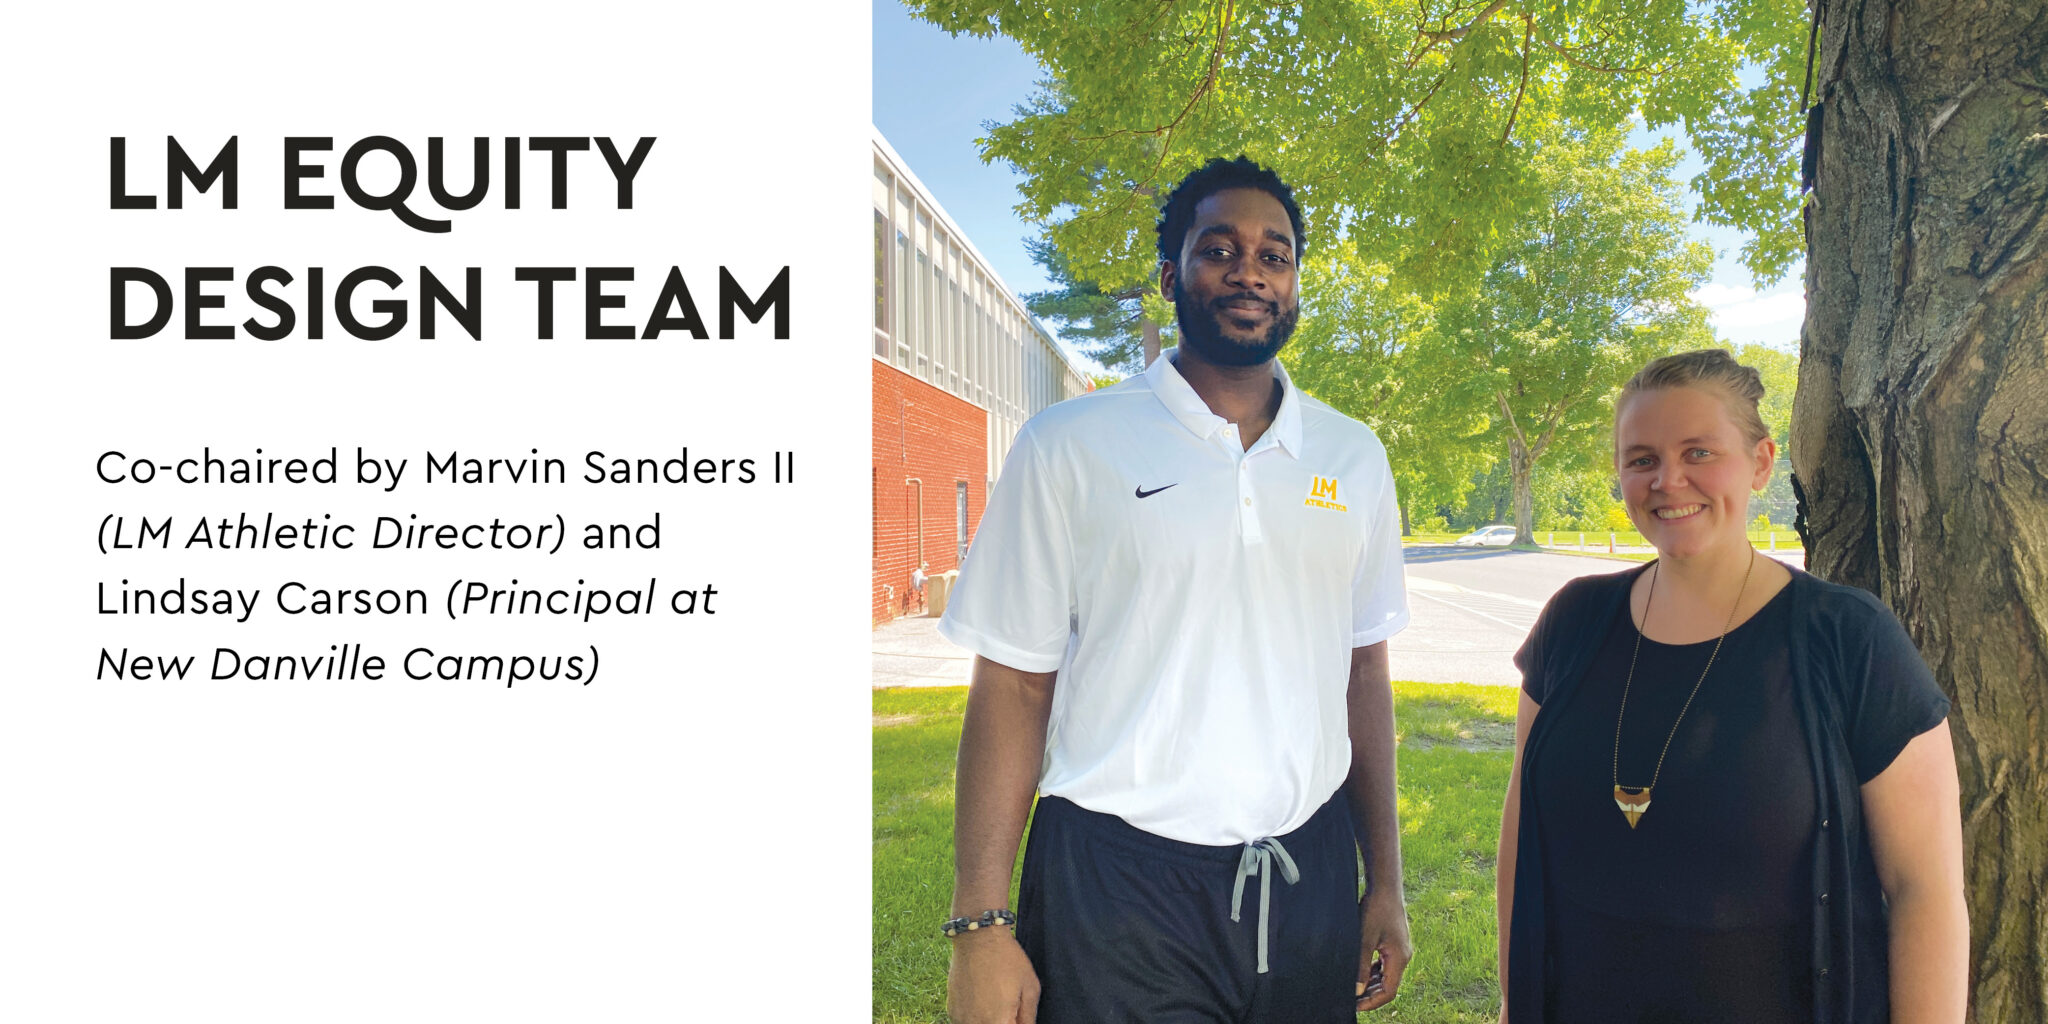 equity design team - marvin sanders and lindsay carson